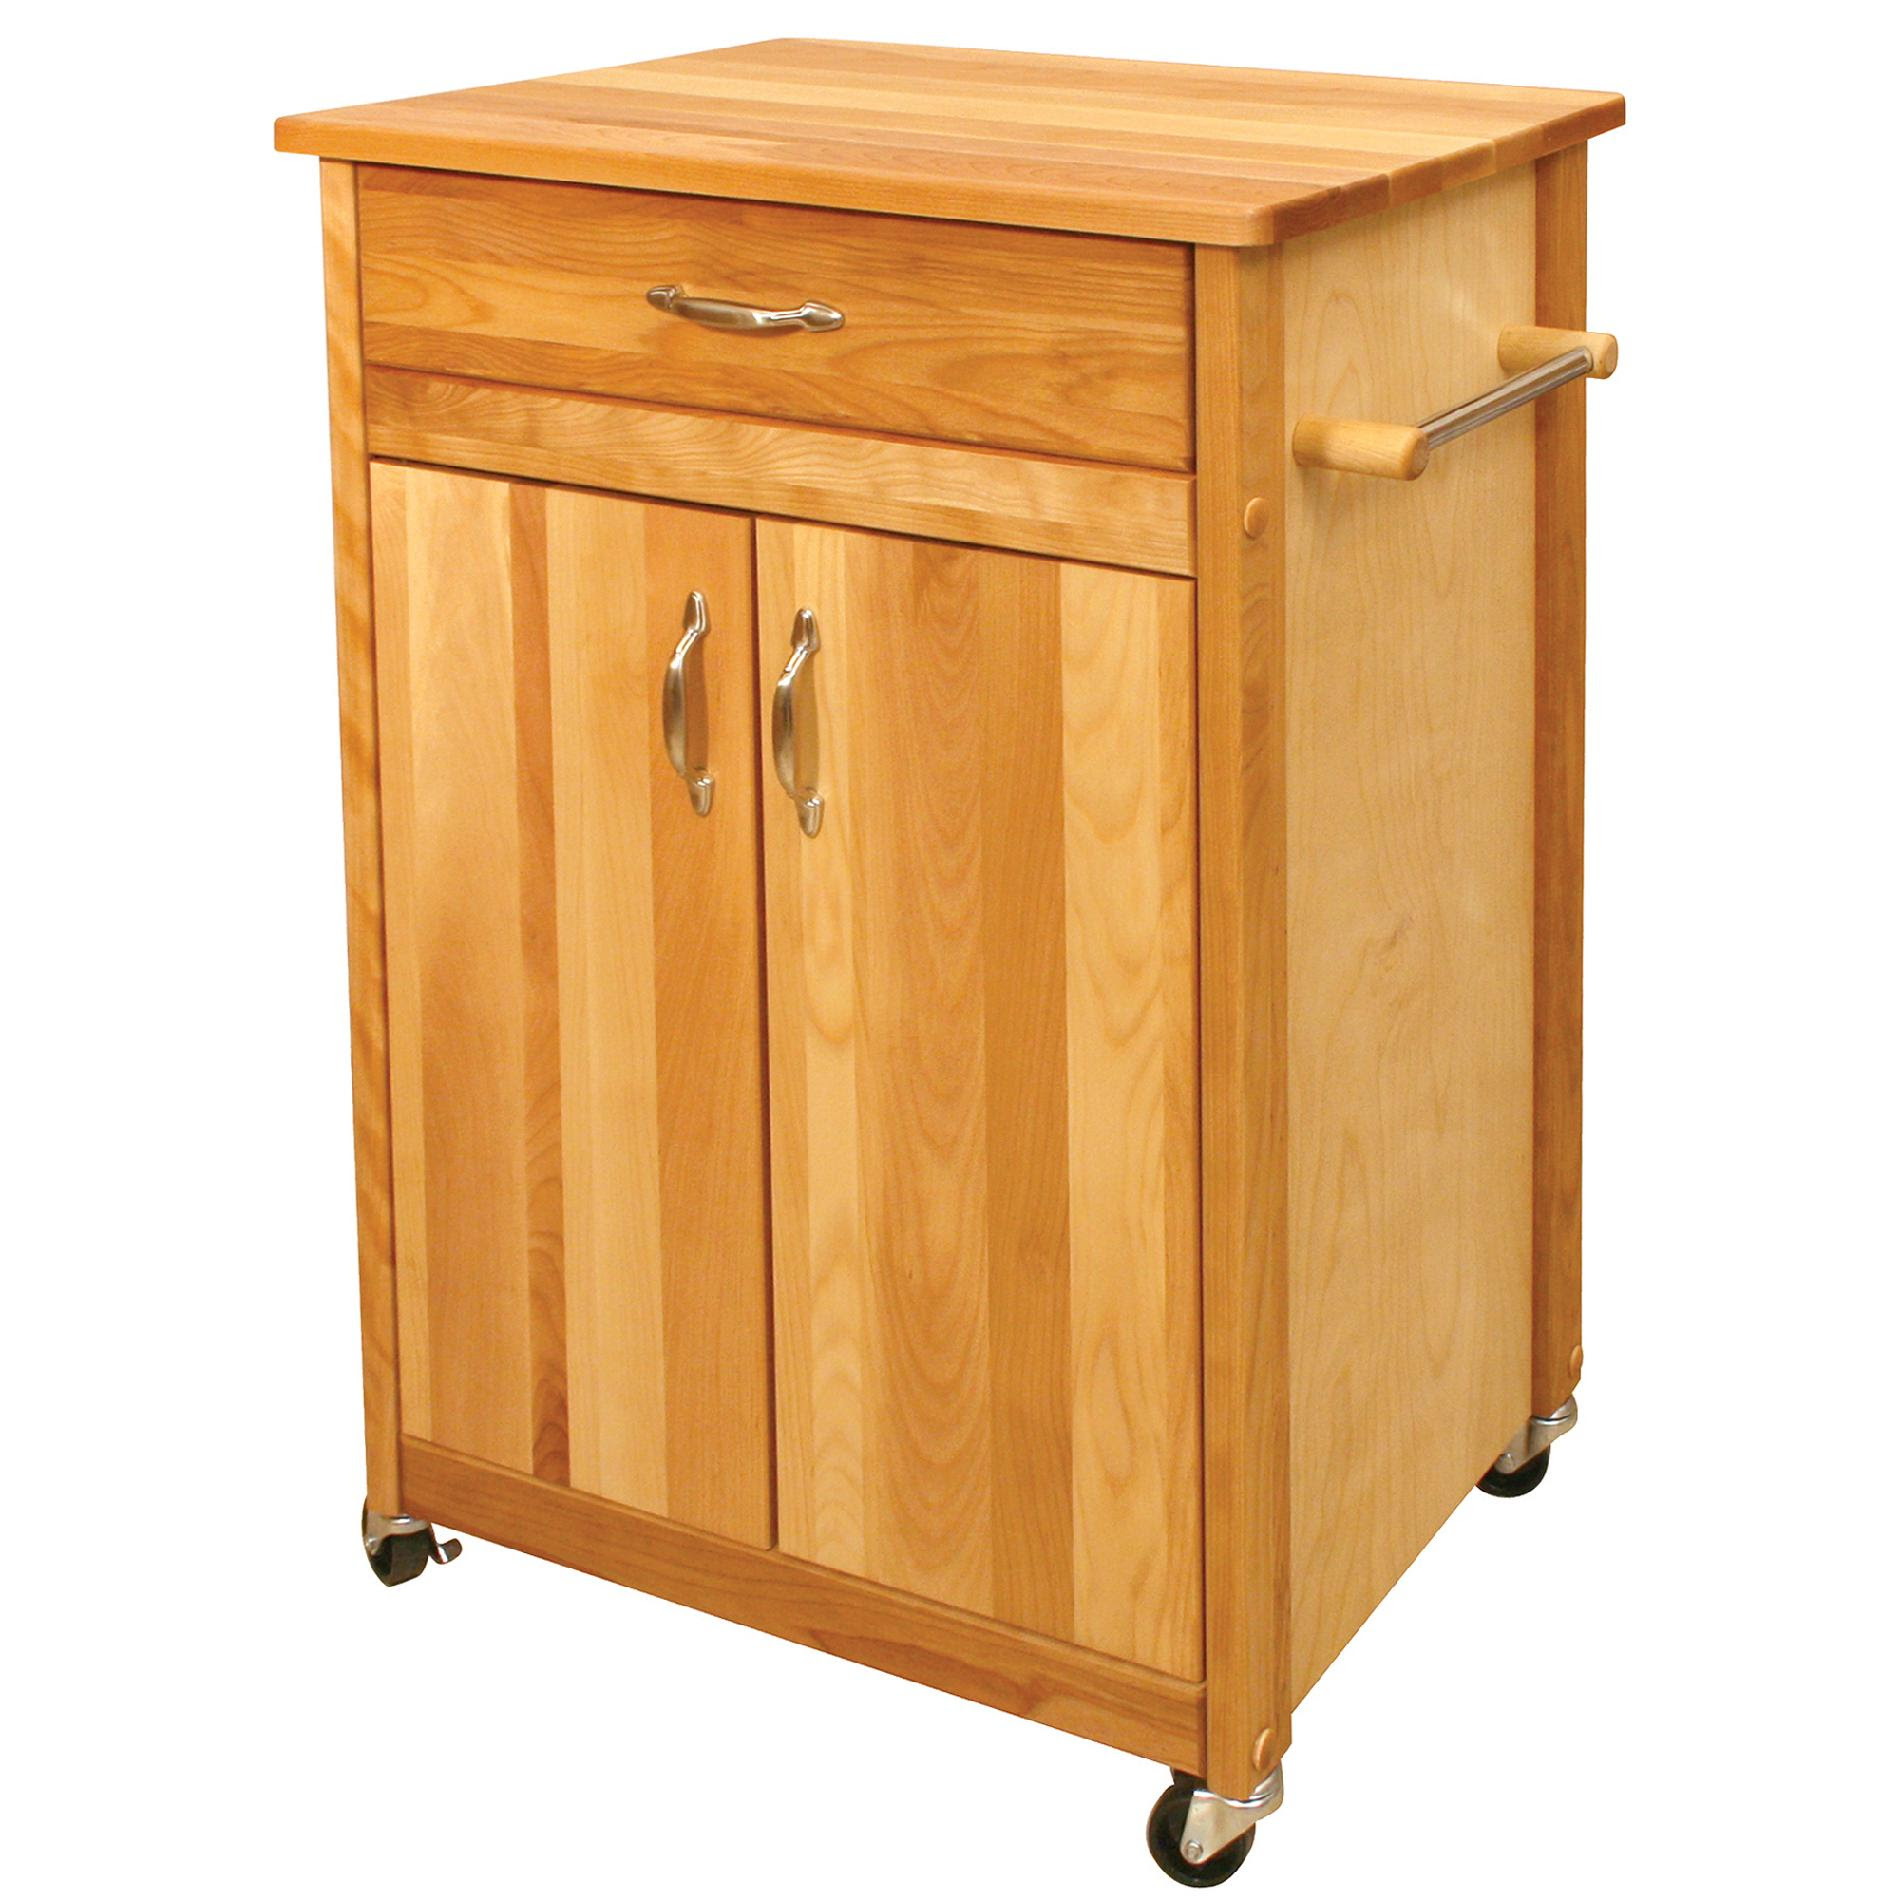 Ameriwood 2-Door Storage Cabinet - Furniture & Mattresses ...